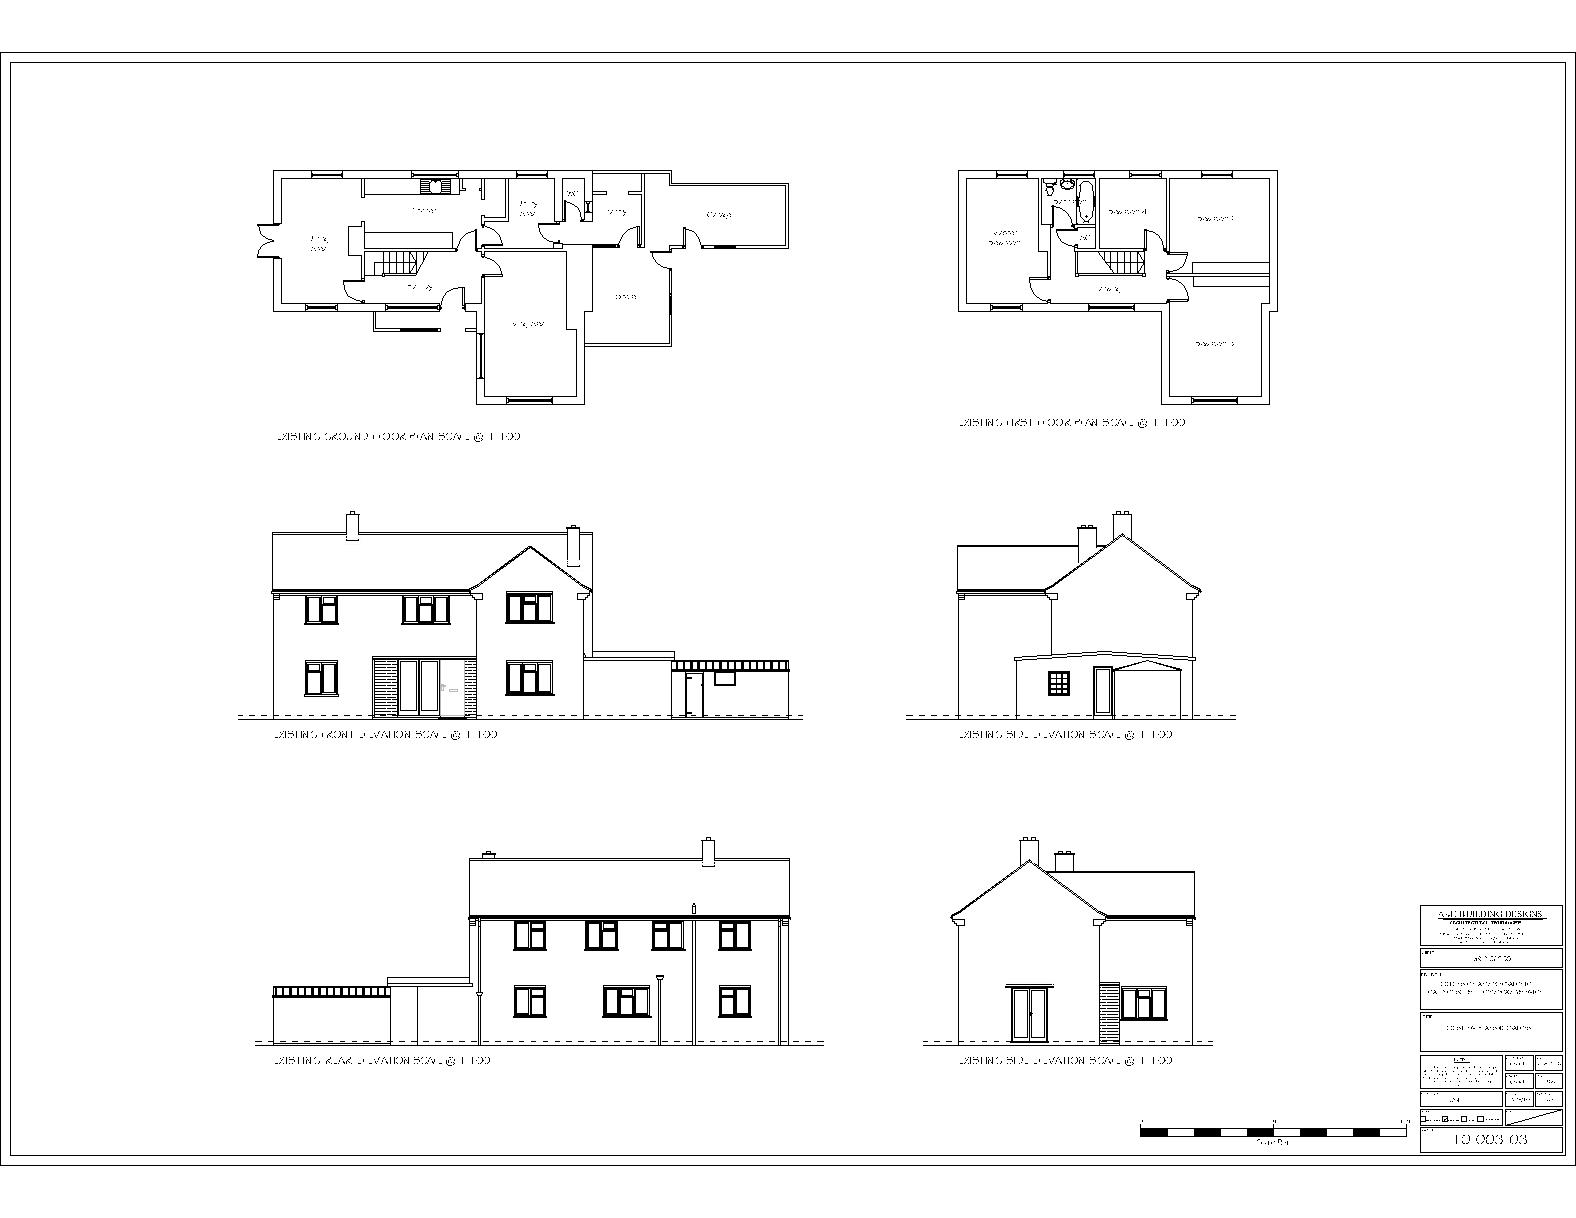 Plan En Elevation : Residential building plan and elevation joy studio